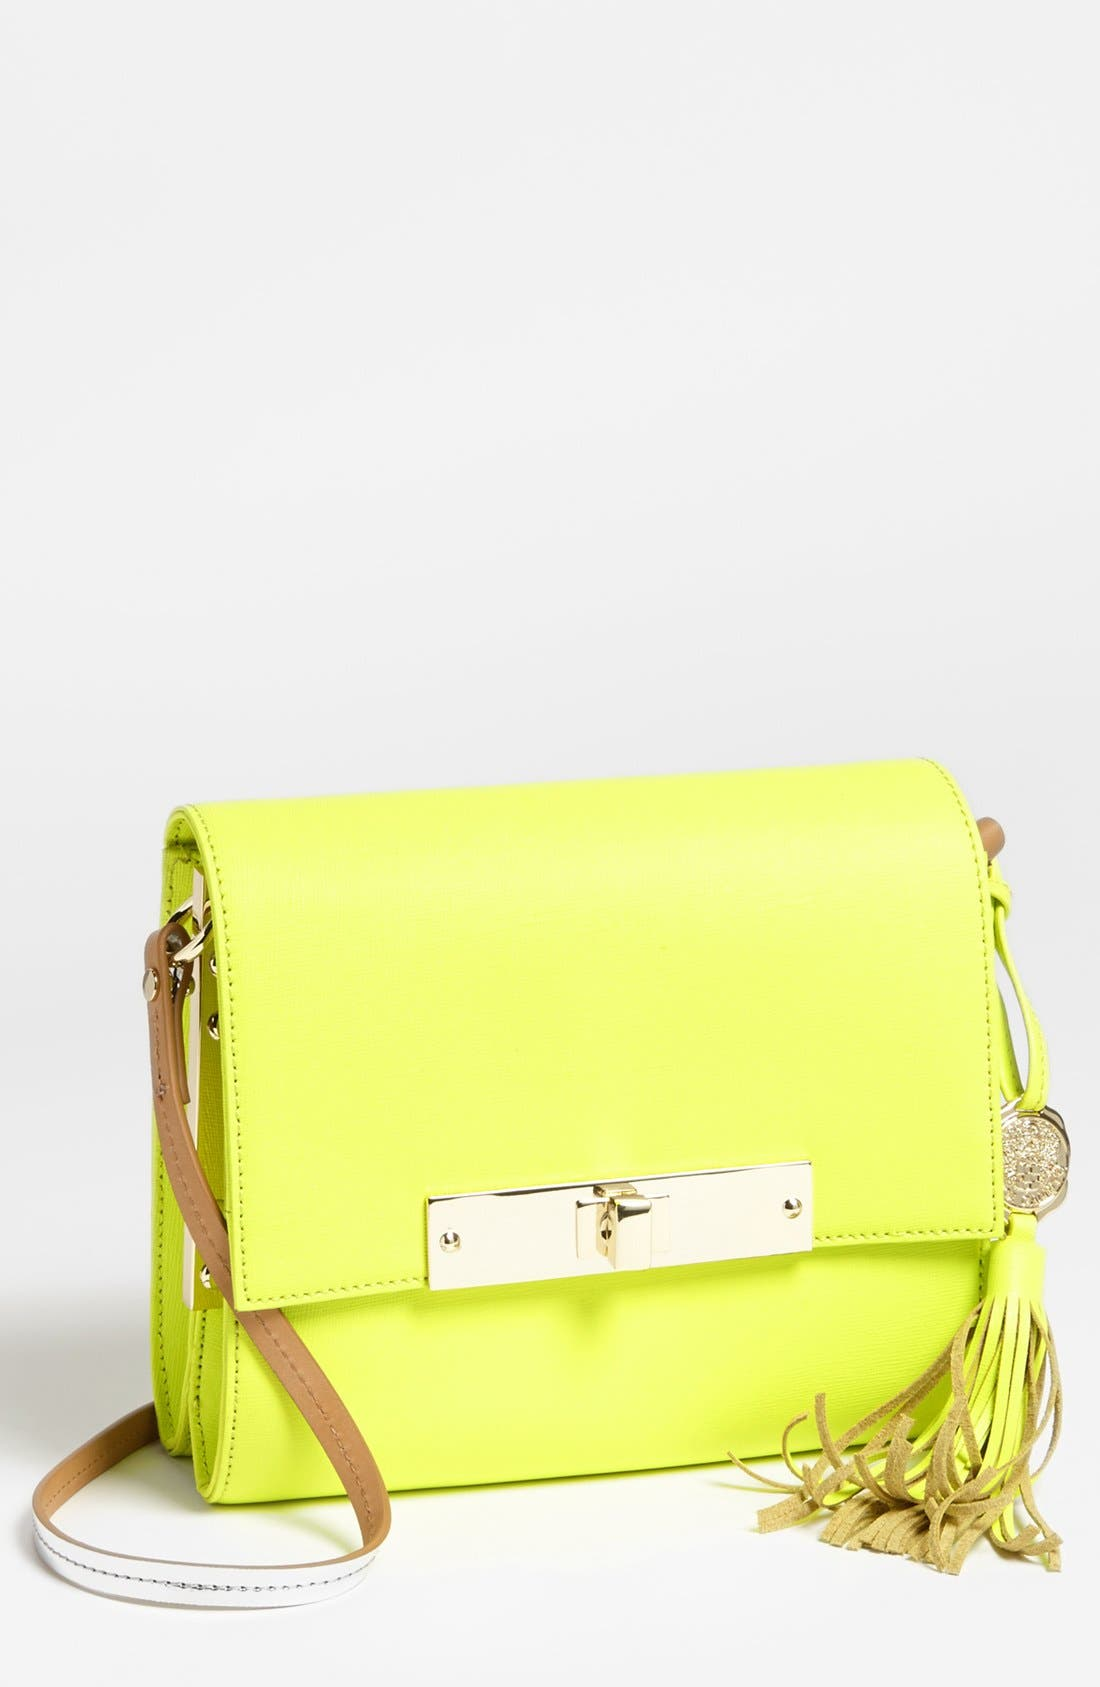 Alternate Image 1 Selected - Vince Camuto 'Judy' Crossbody Bag